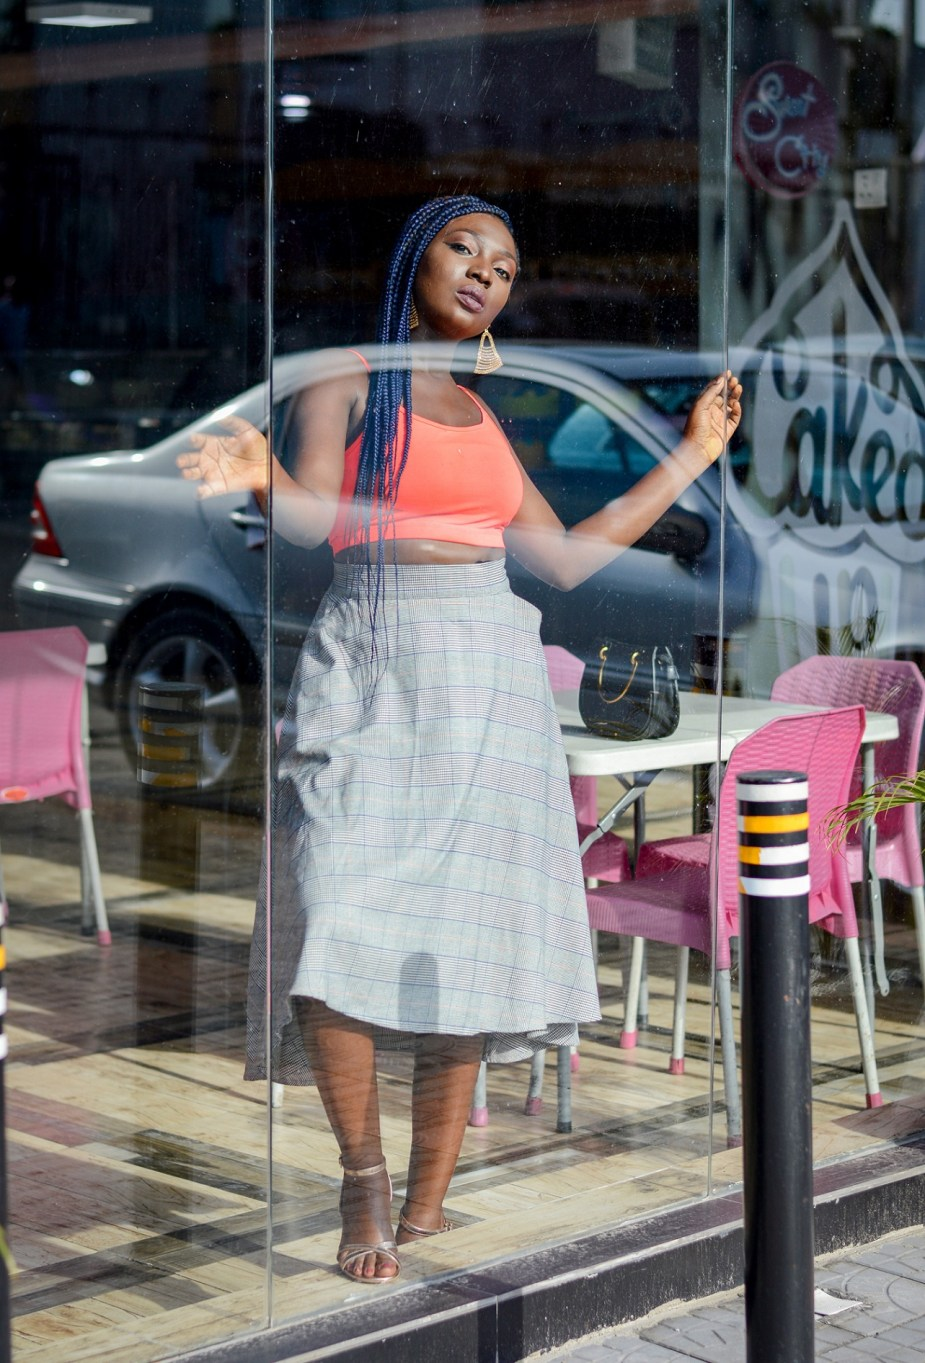 Skirt and sneakers trend tartan and neon steet style Nigerian fashion blogger